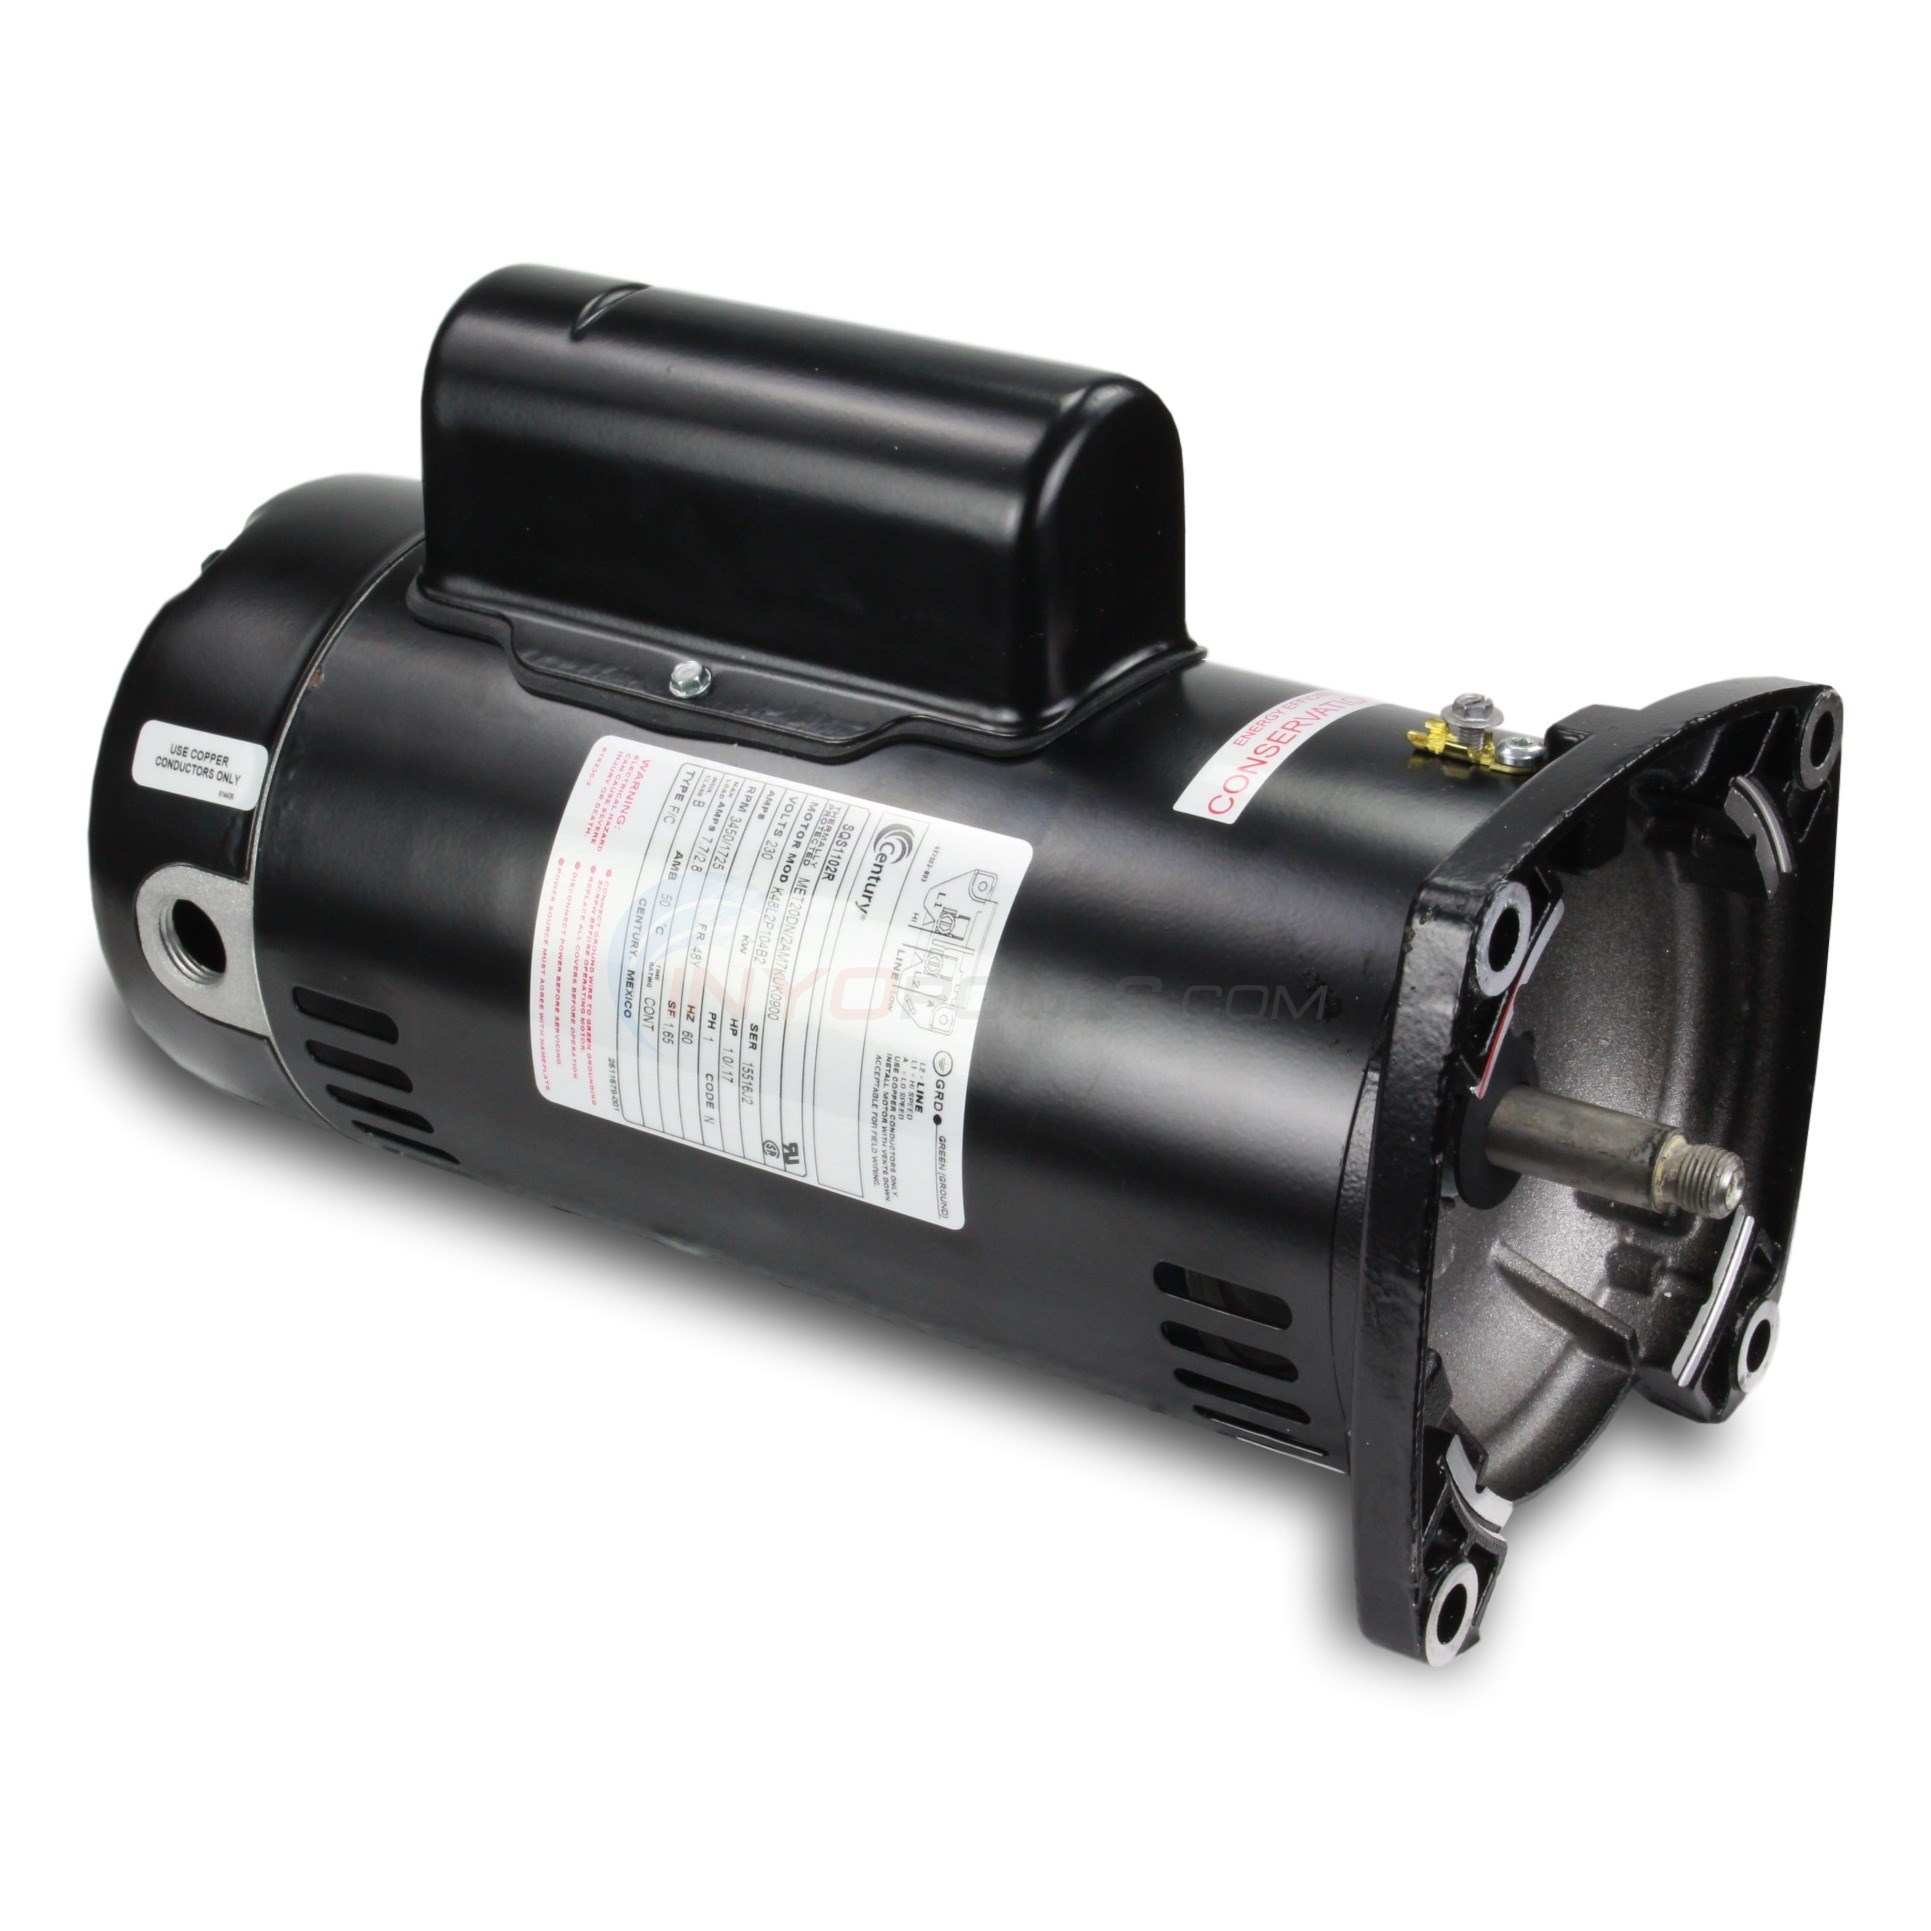 A.O. Smith 1 H.P Square Flange Dual Speed Full Rate Motor - SQS1102R